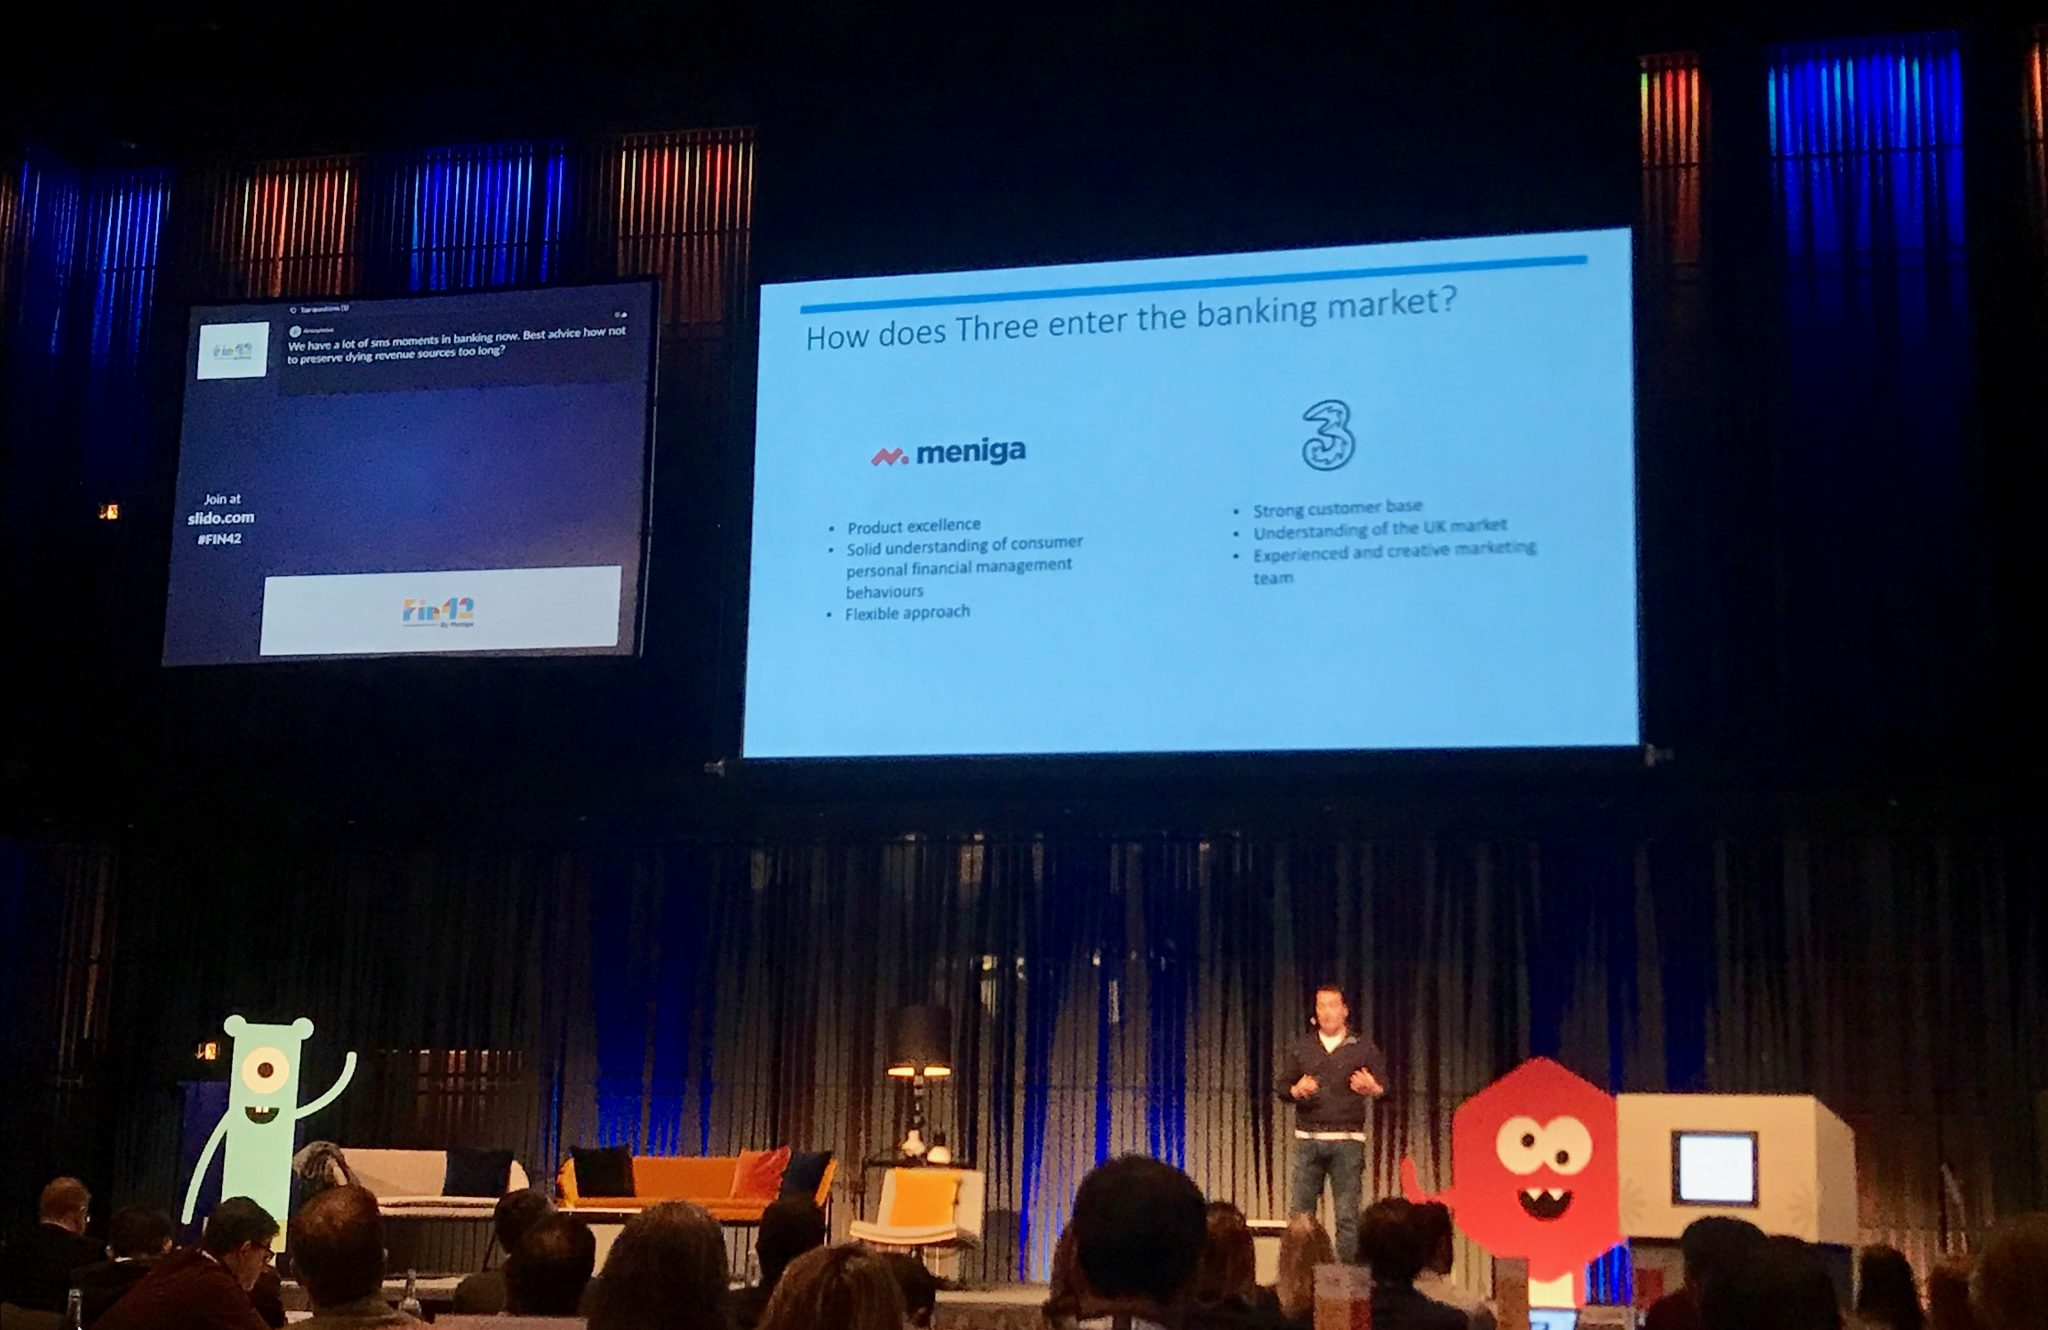 News from Meniga's FIN42 event in Iceland